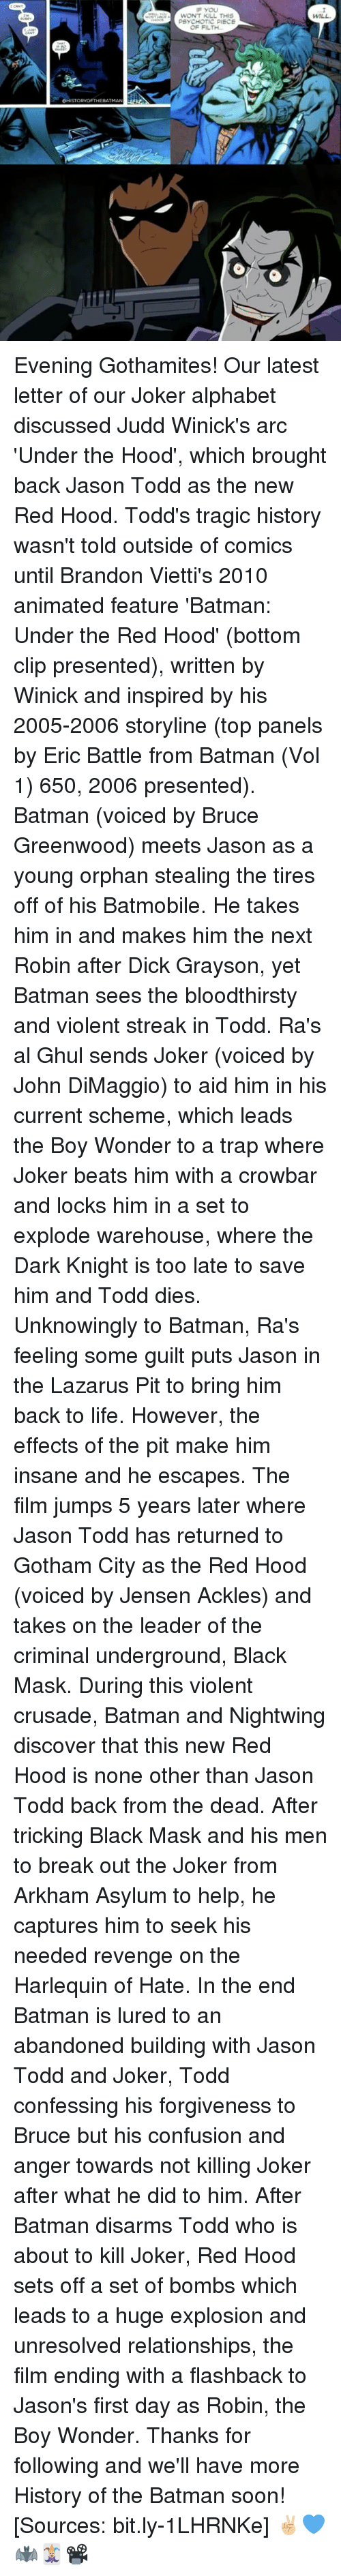 crowbar: STORY OFTHE BATMAN  WON'T KILL THIS  PSYCHOTIC PIECE  WILL. Evening Gothamites! Our latest letter of our Joker alphabet discussed Judd Winick's arc 'Under the Hood', which brought back Jason Todd as the new Red Hood. Todd's tragic history wasn't told outside of comics until Brandon Vietti's 2010 animated feature 'Batman: Under the Red Hood' (bottom clip presented), written by Winick and inspired by his 2005-2006 storyline (top panels by Eric Battle from Batman (Vol 1) 650, 2006 presented). Batman (voiced by Bruce Greenwood) meets Jason as a young orphan stealing the tires off of his Batmobile. He takes him in and makes him the next Robin after Dick Grayson, yet Batman sees the bloodthirsty and violent streak in Todd. Ra's al Ghul sends Joker (voiced by John DiMaggio) to aid him in his current scheme, which leads the Boy Wonder to a trap where Joker beats him with a crowbar and locks him in a set to explode warehouse, where the Dark Knight is too late to save him and Todd dies. Unknowingly to Batman, Ra's feeling some guilt puts Jason in the Lazarus Pit to bring him back to life. However, the effects of the pit make him insane and he escapes. The film jumps 5 years later where Jason Todd has returned to Gotham City as the Red Hood (voiced by Jensen Ackles) and takes on the leader of the criminal underground, Black Mask. During this violent crusade, Batman and Nightwing discover that this new Red Hood is none other than Jason Todd back from the dead. After tricking Black Mask and his men to break out the Joker from Arkham Asylum to help, he captures him to seek his needed revenge on the Harlequin of Hate. In the end Batman is lured to an abandoned building with Jason Todd and Joker, Todd confessing his forgiveness to Bruce but his confusion and anger towards not killing Joker after what he did to him. After Batman disarms Todd who is about to kill Joker, Red Hood sets off a set of bombs which leads to a huge explosion and unresolved relationships, the film en